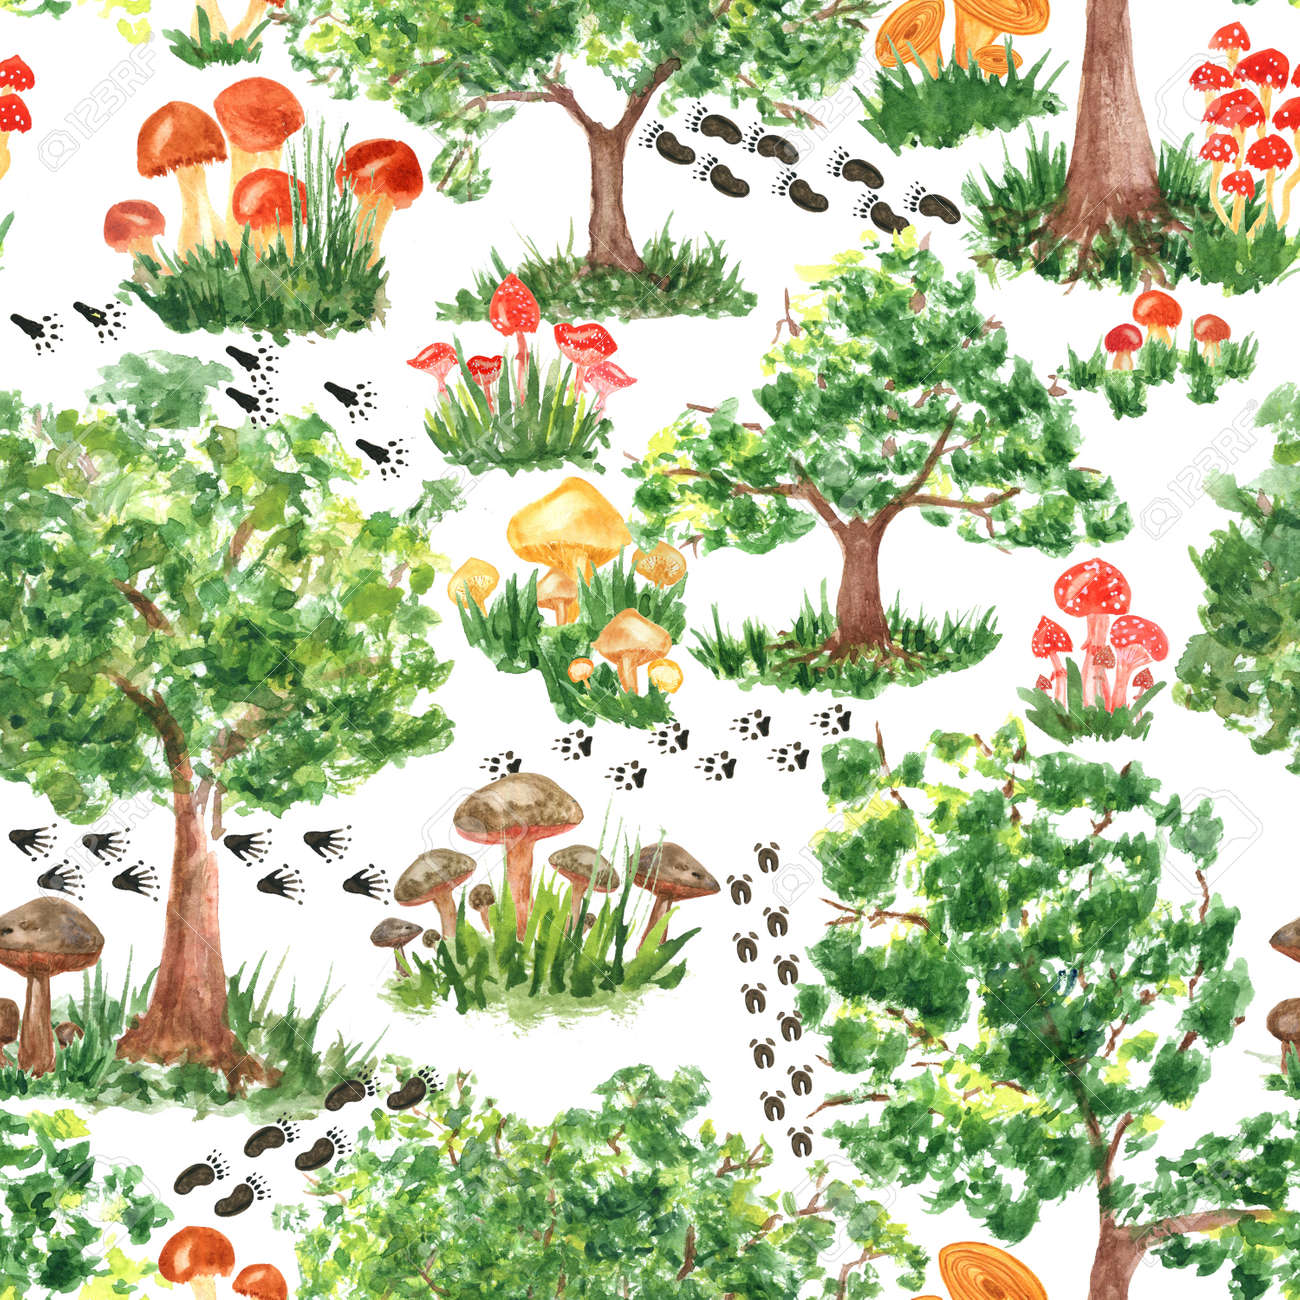 Colorful watercolor trees, animal footprints and mushrooms seamless pattern. Hand Illustration for creating fabrics, wallpapers, gift wrapping paper, invitations, textile, scrapbooking. - 165544109